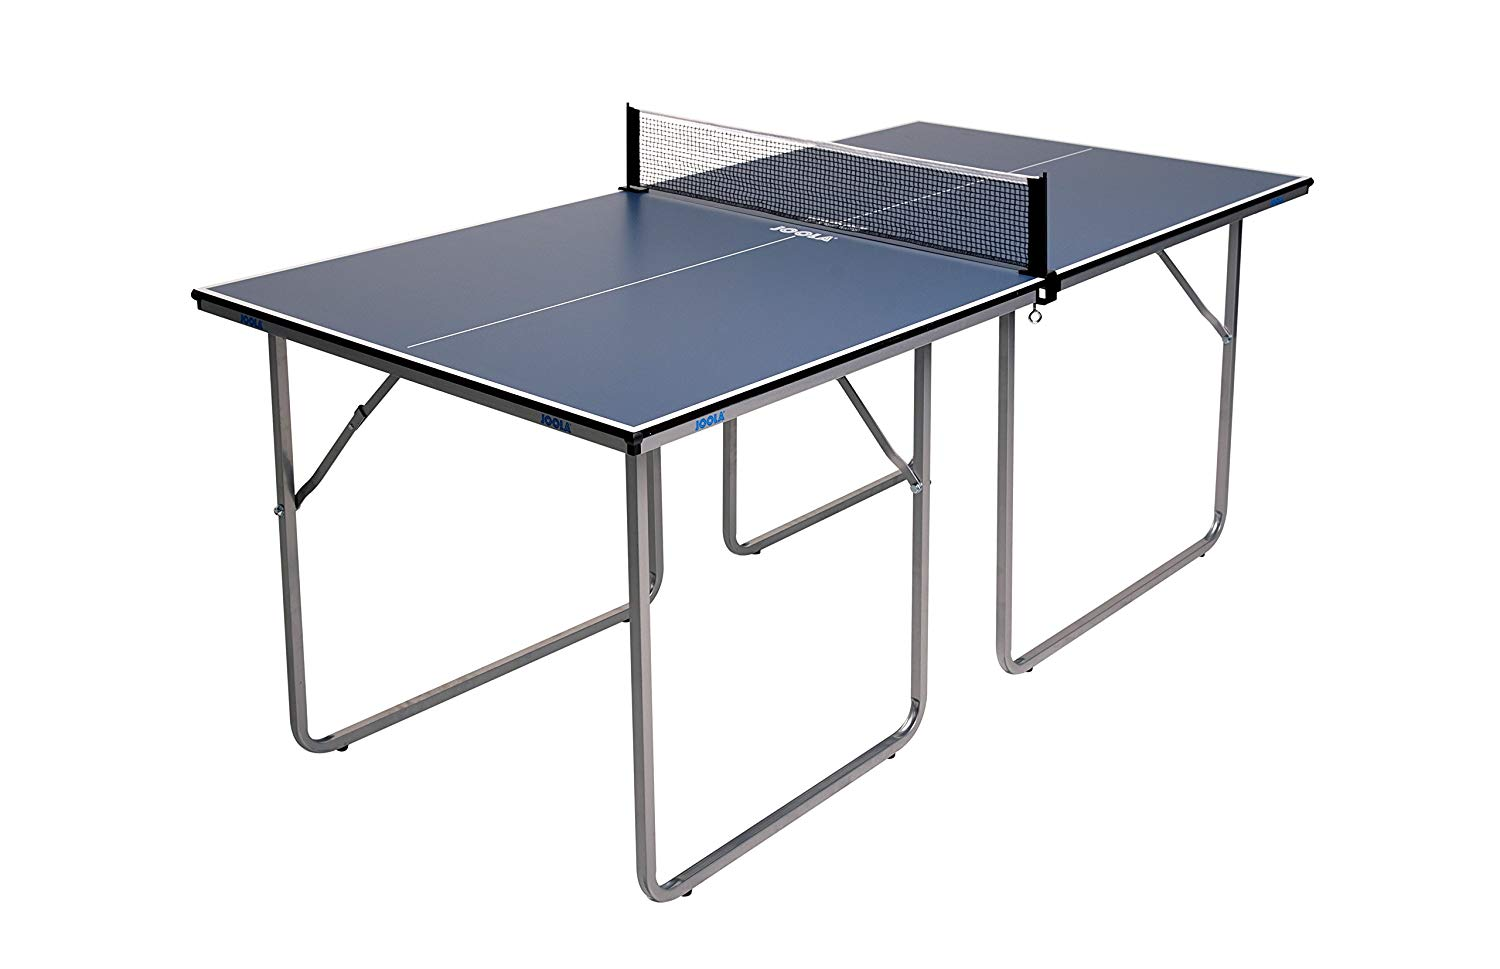 2886ddf4d11 5 Best Budget Friendly Ping Pong Tables under  300 - 2019 Review